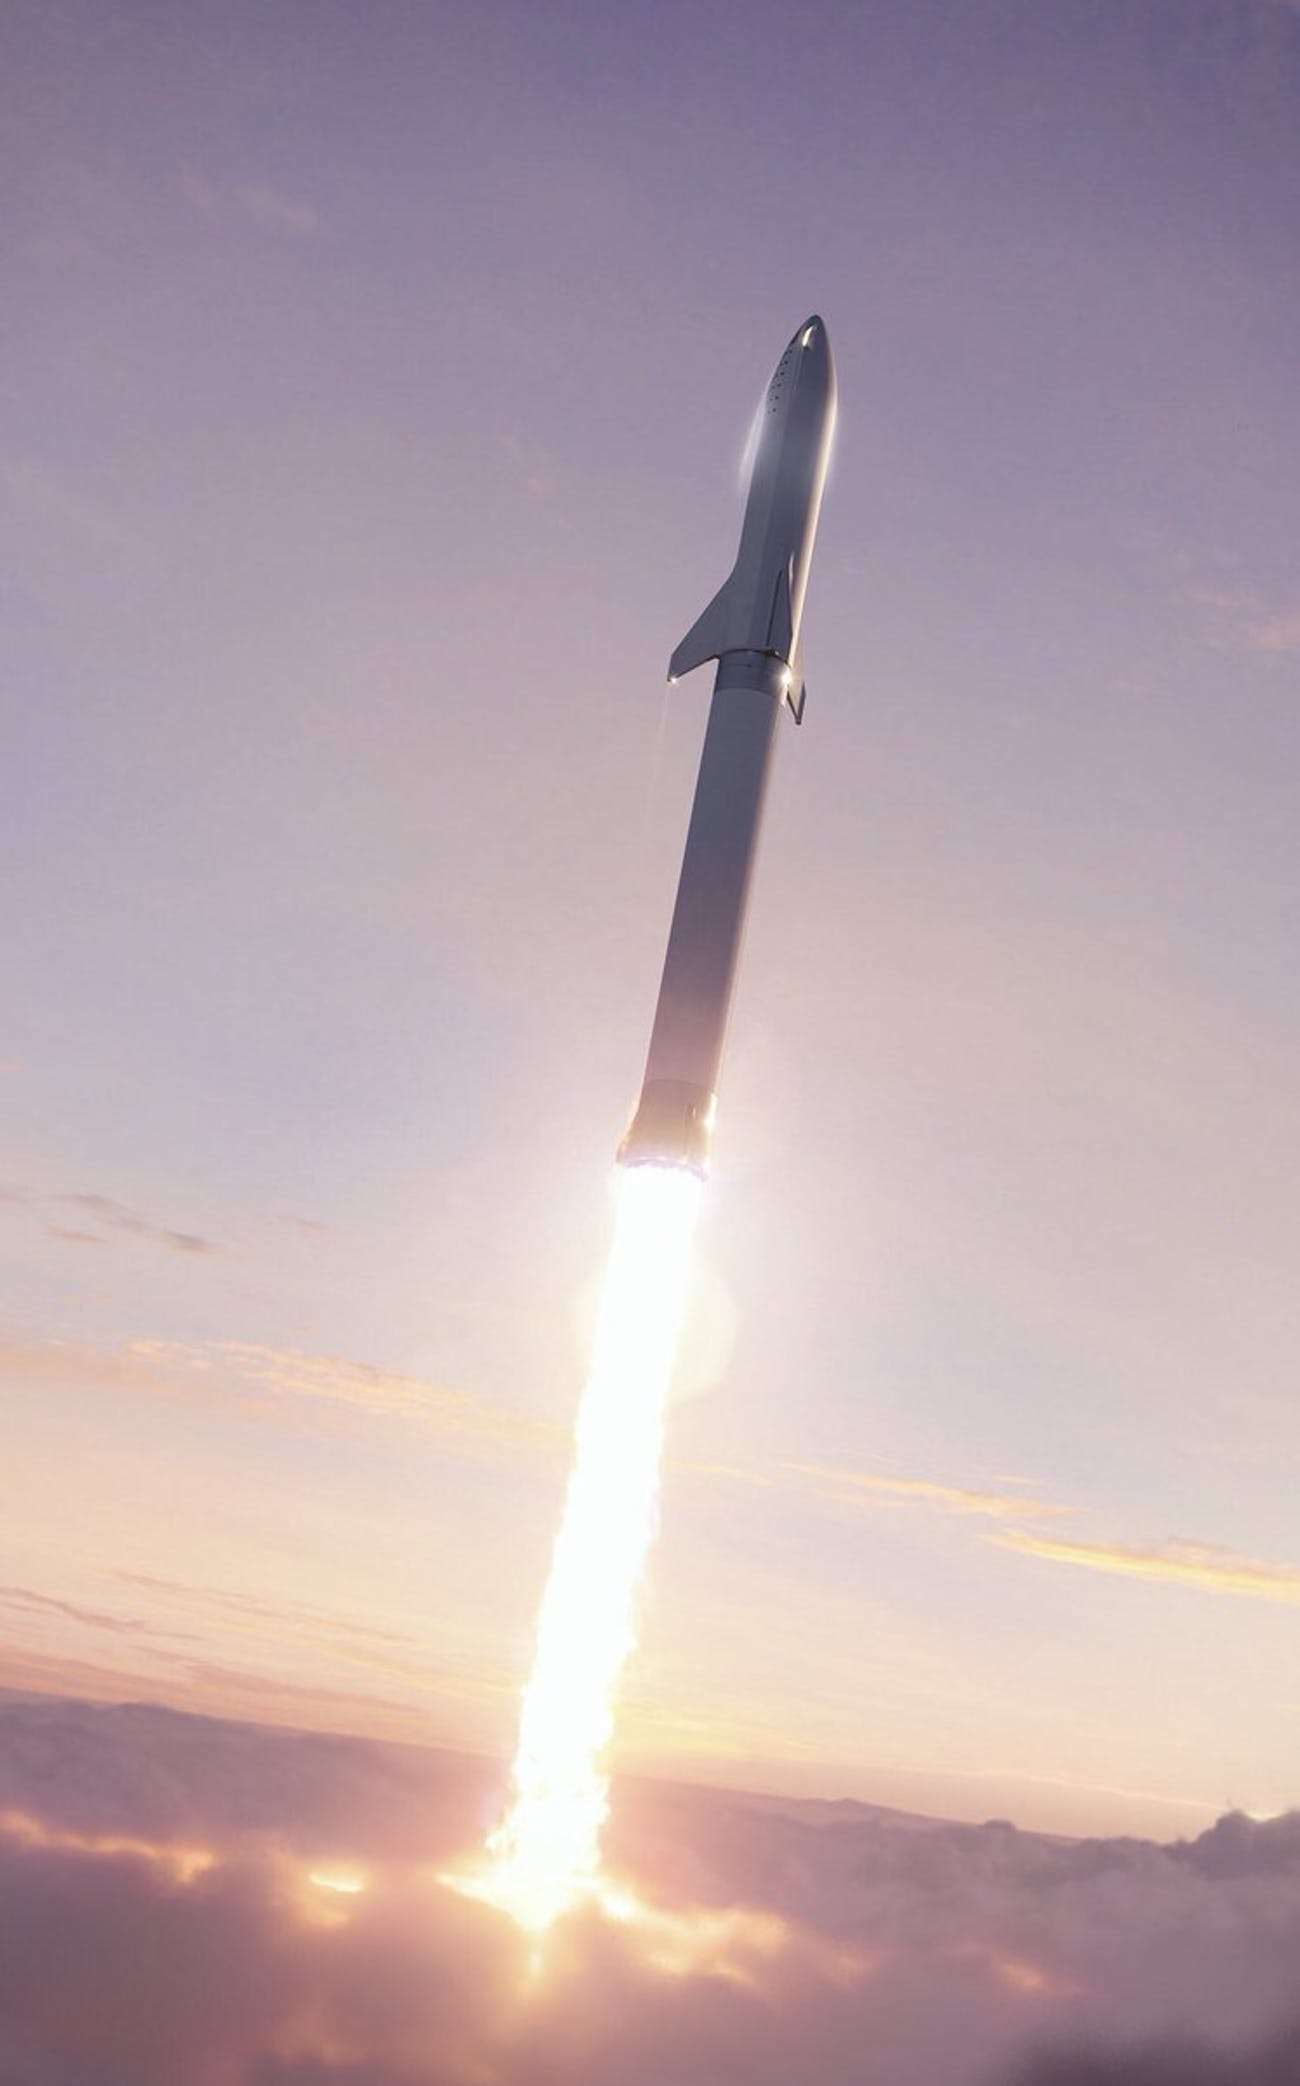 The new BFR design launching into space.